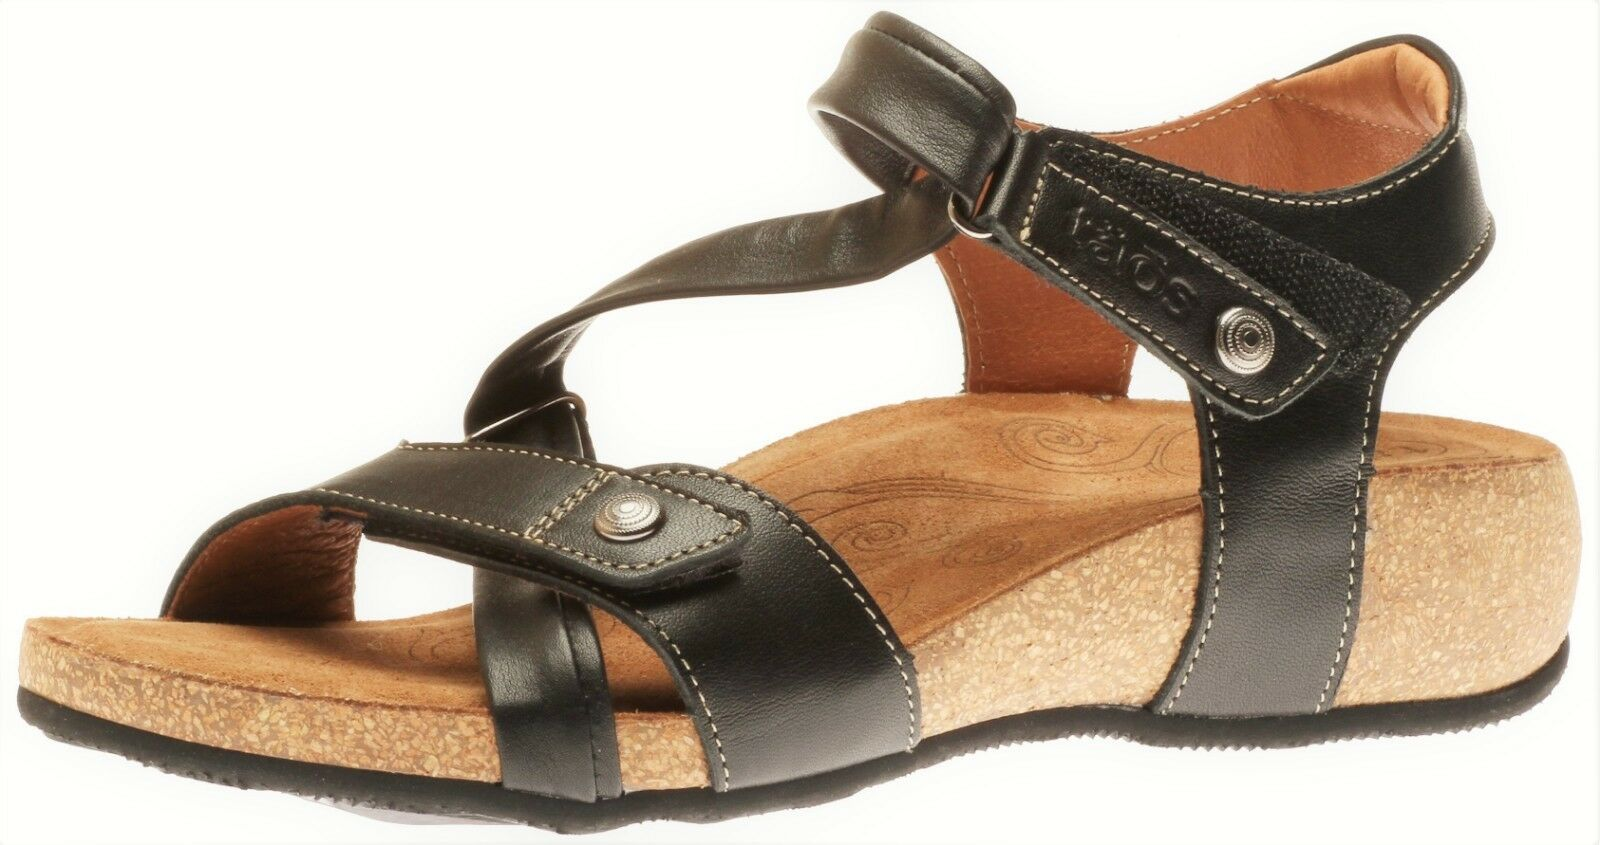 Comfort Leather Sandals Taos Taos Taos chaussures Universe - 3 colours 4128c3